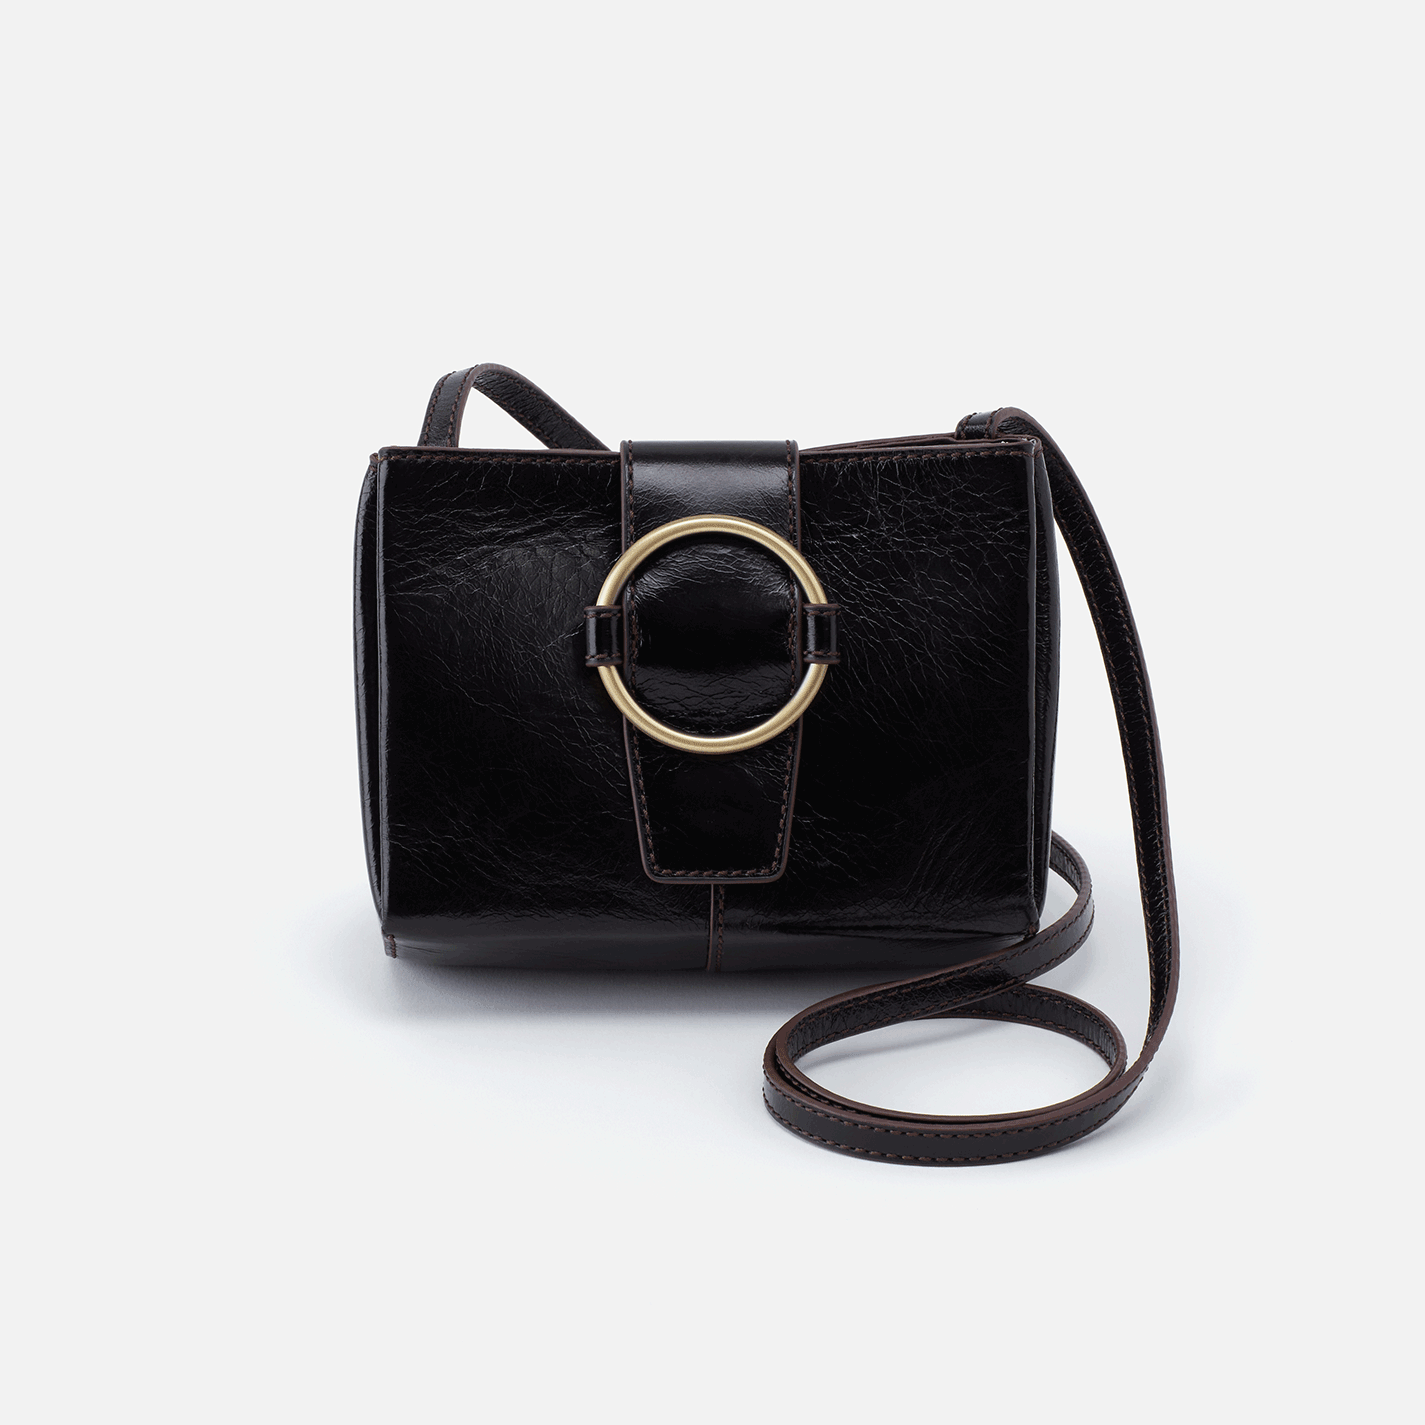 Elan Crossbody - Black